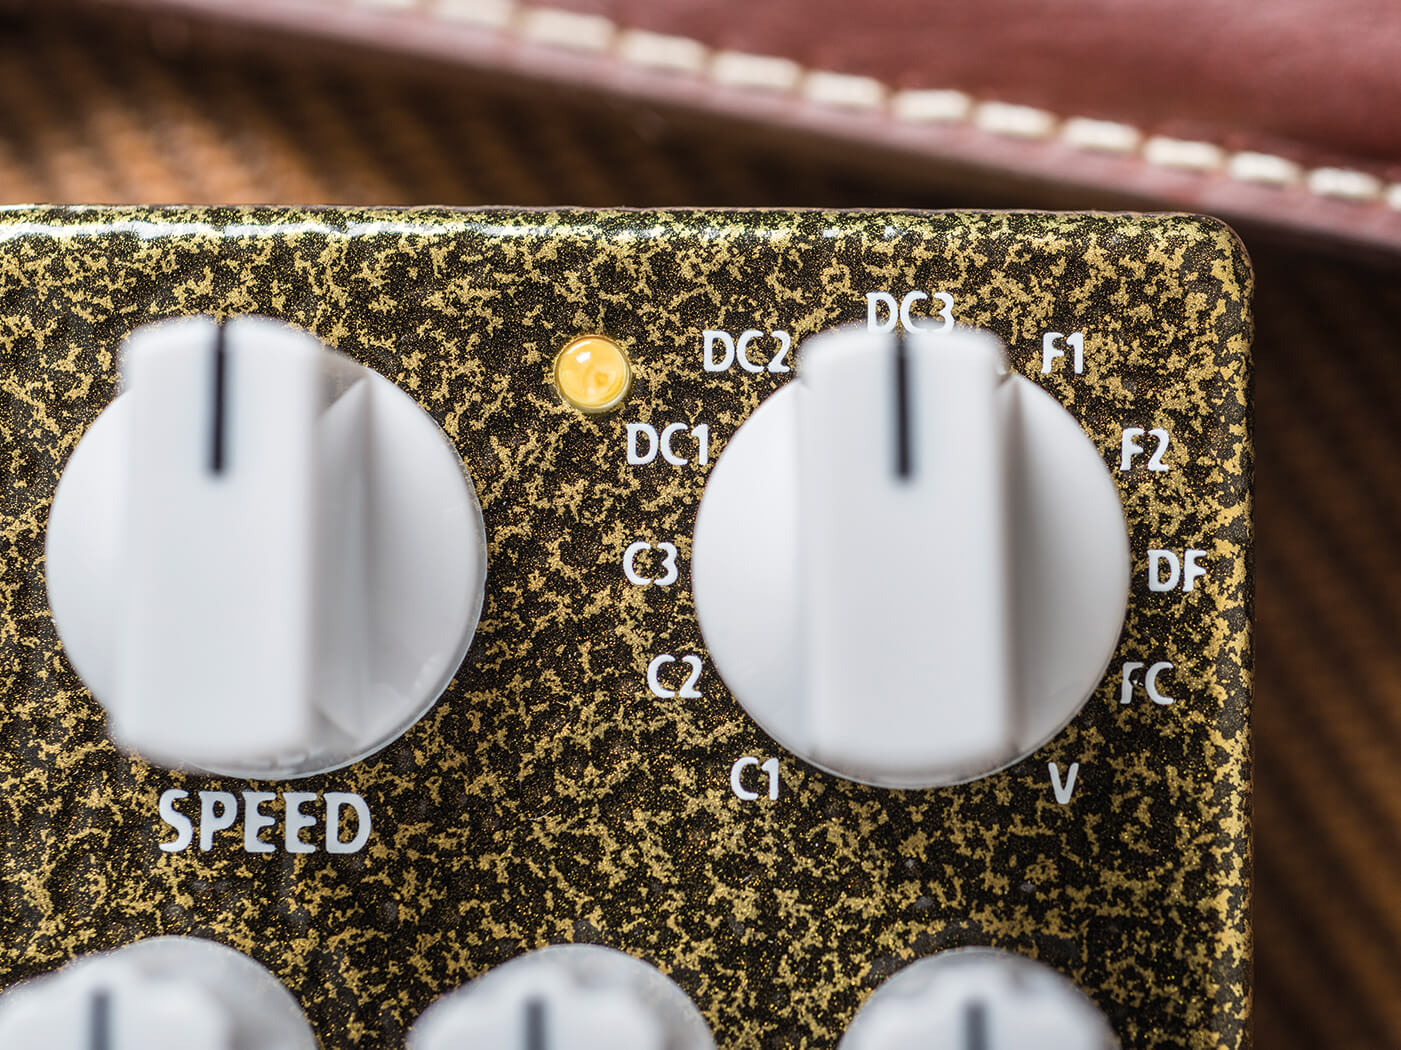 Mad Professor Double Moon Speed and DC knobs